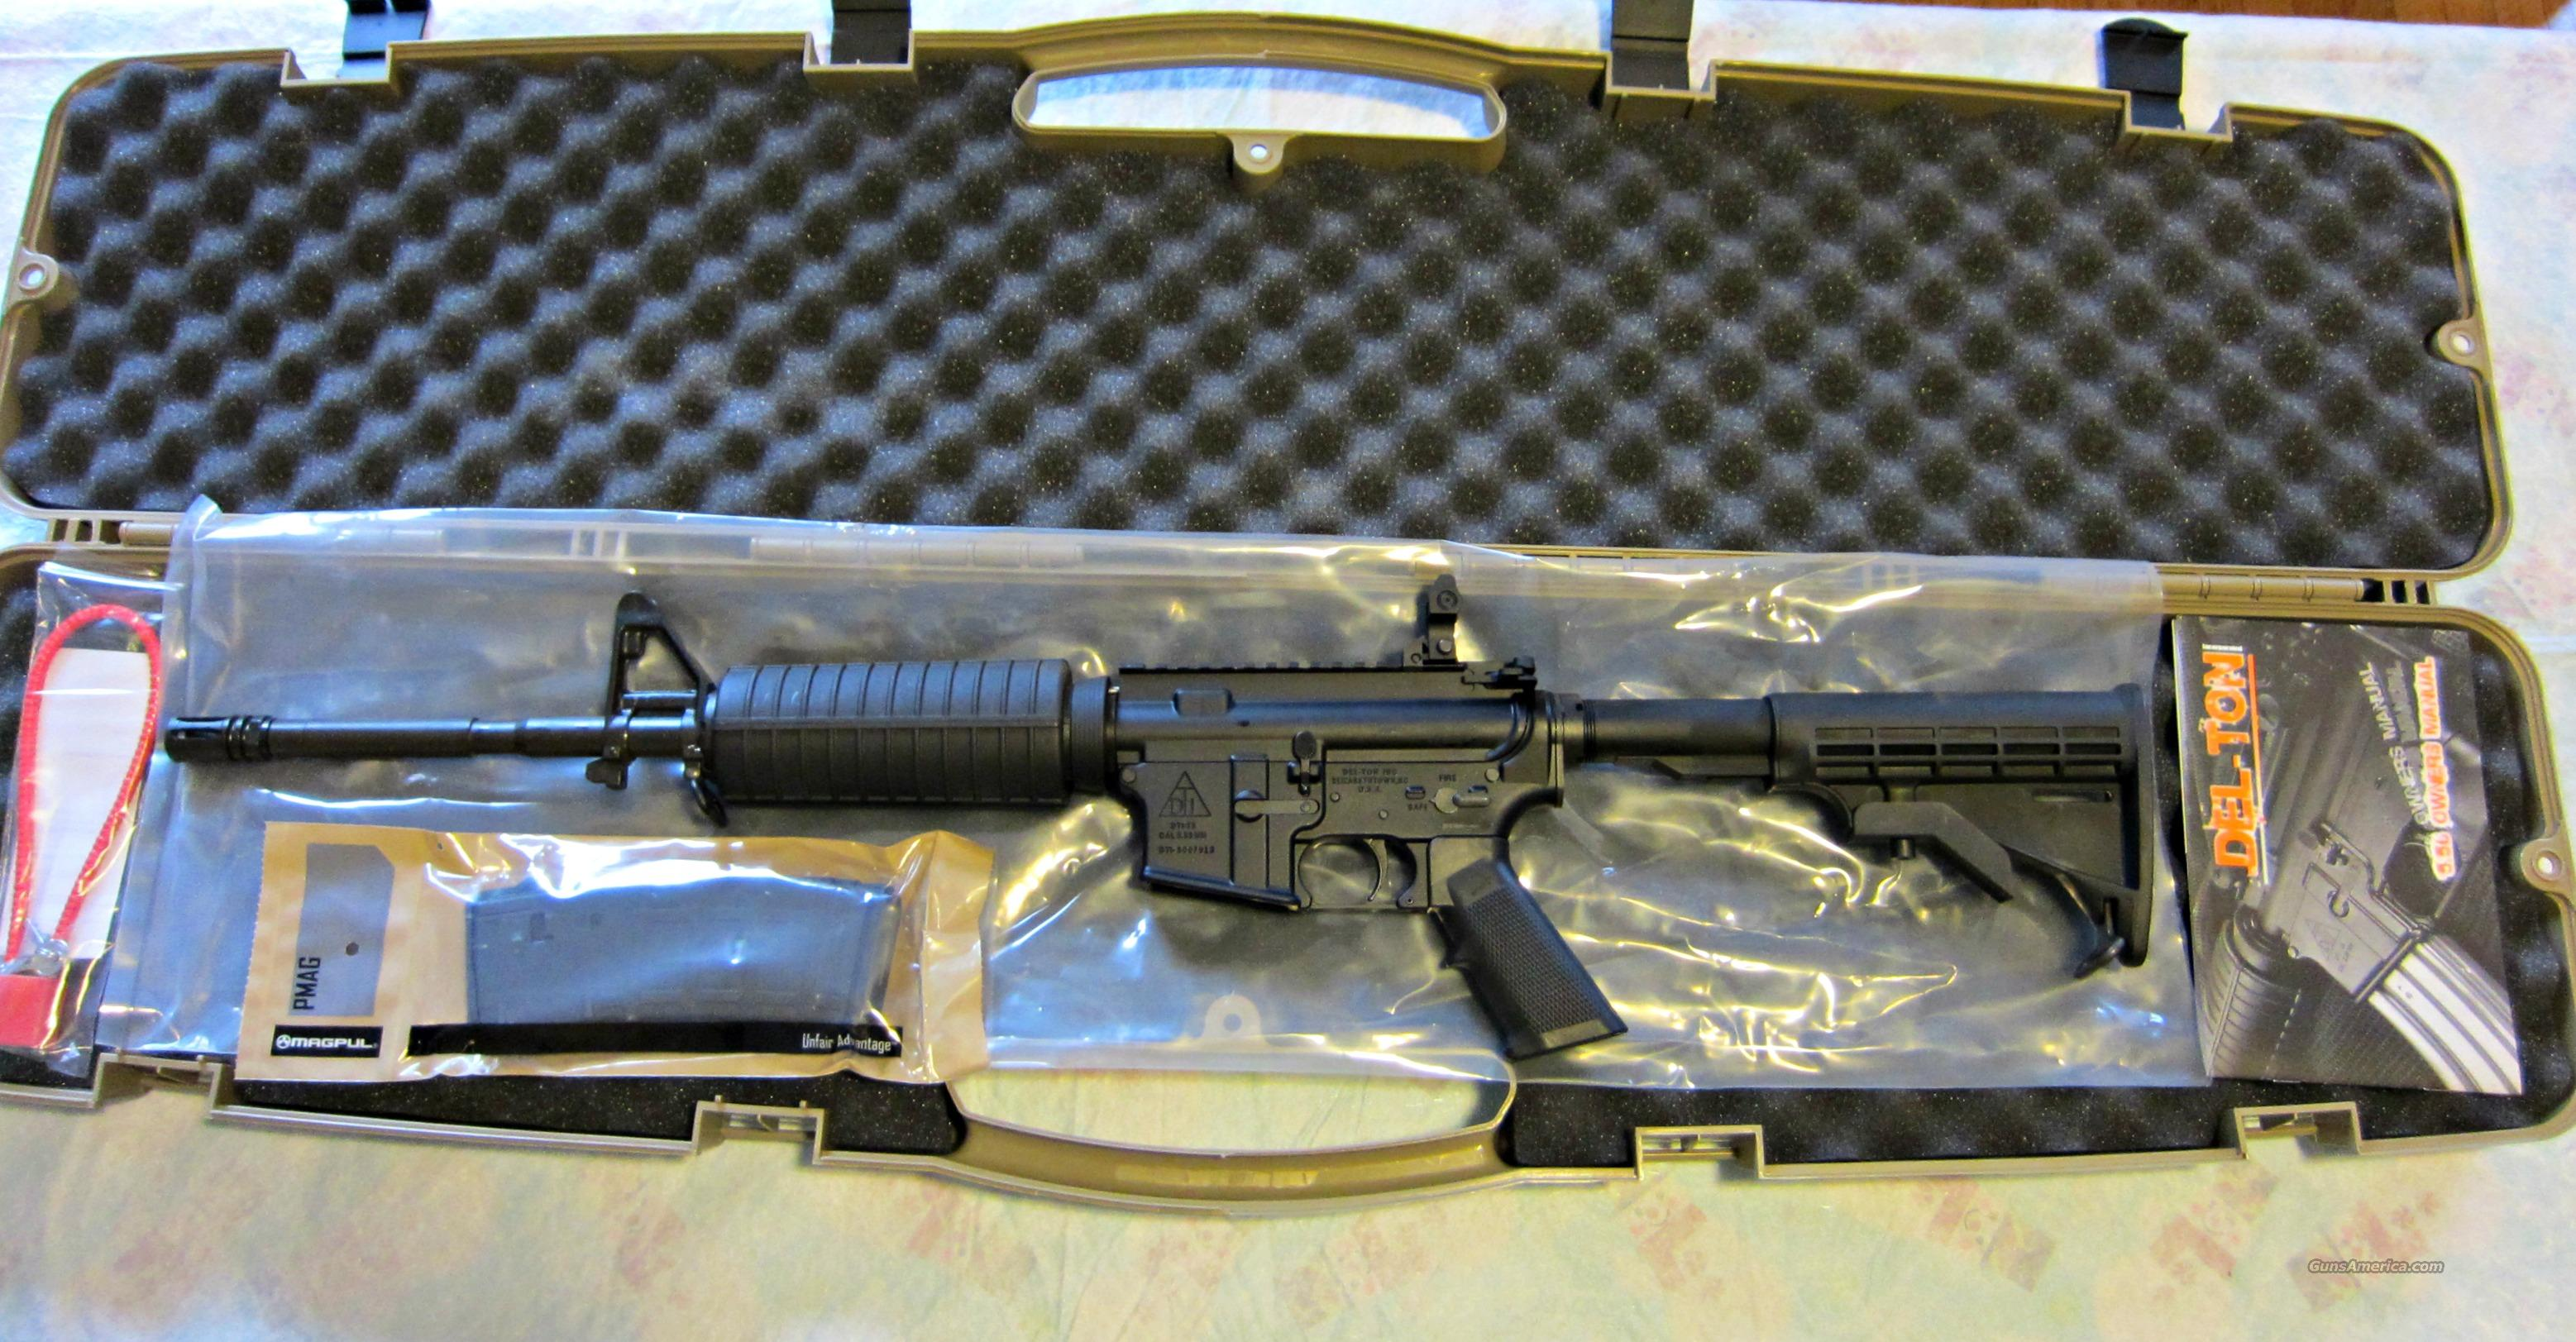 DEL-TON EXTREME DUTY AR-15 M4A3 FLAT TOP CHROME PLATED 16 INCH 1x7 MIL SPEC NIB  Guns > Rifles > AR-15 Rifles - Small Manufacturers > Complete Rifle